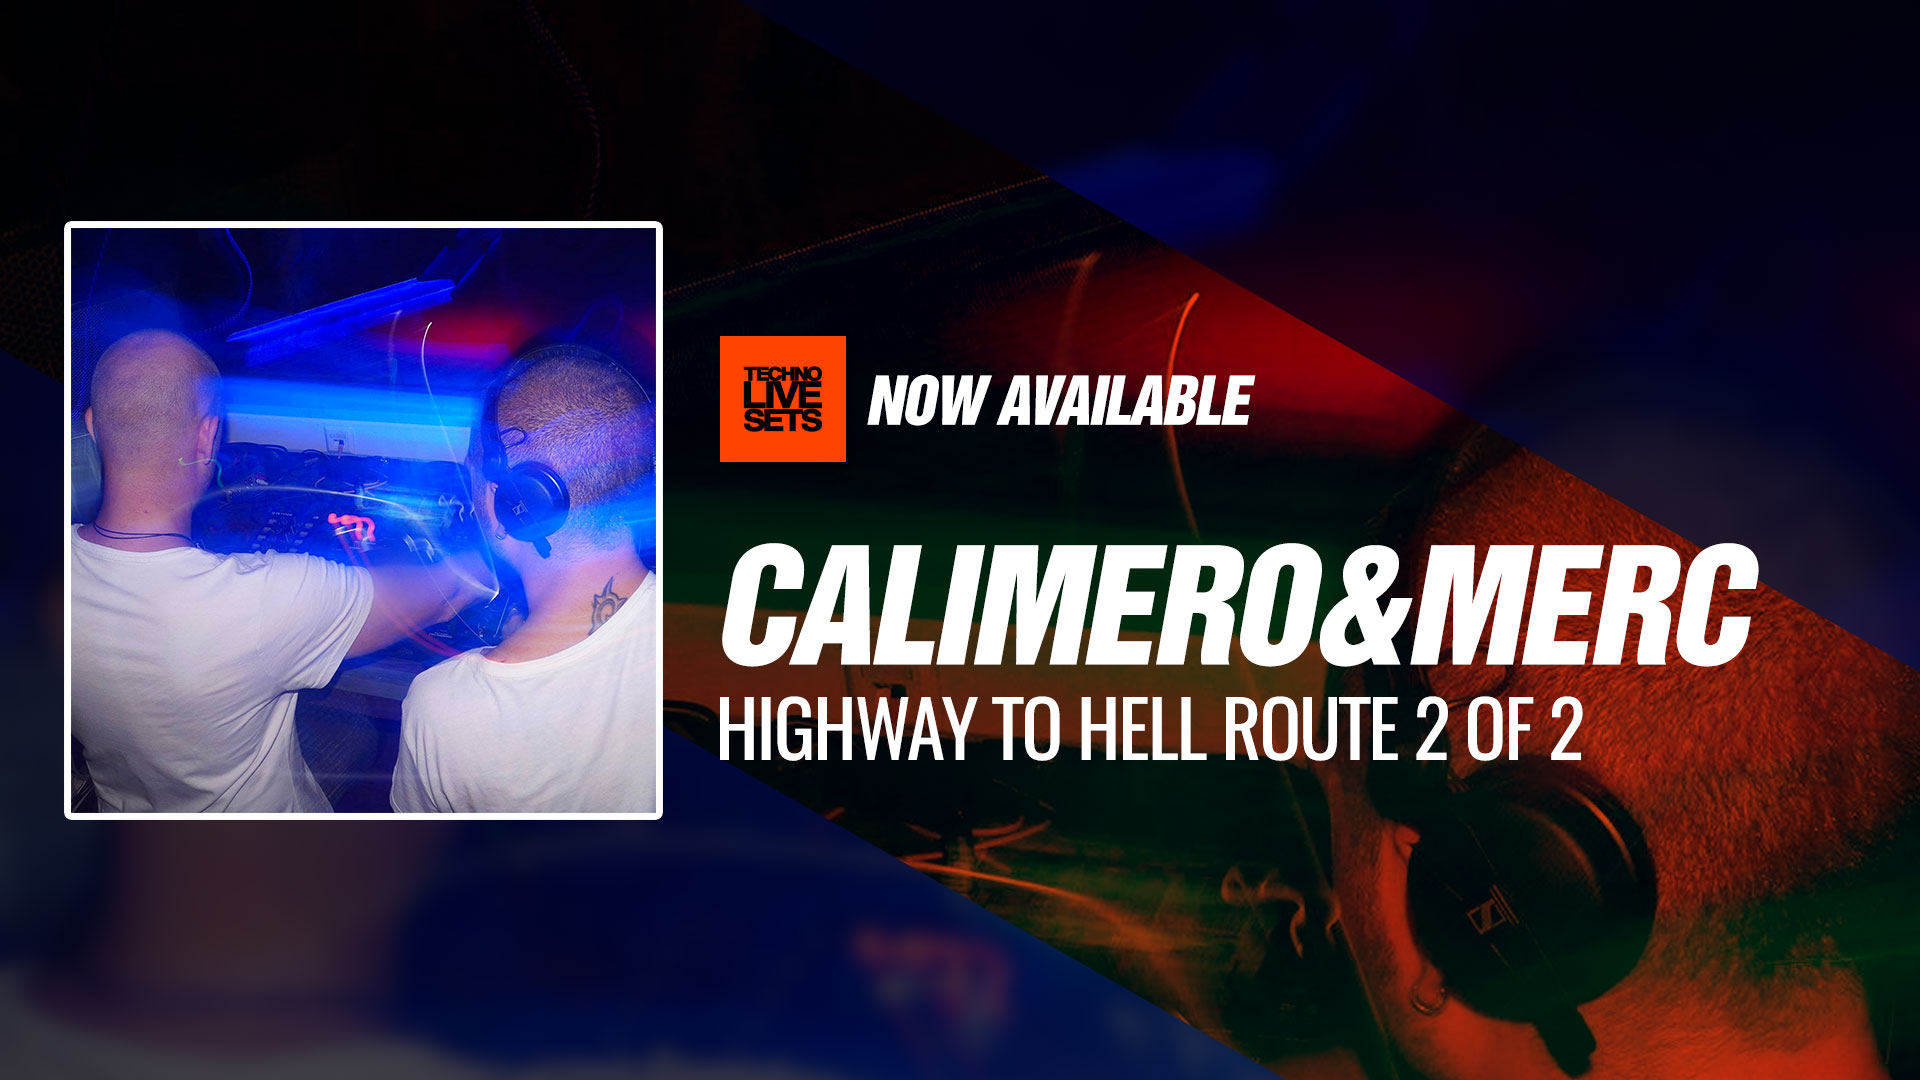 Calimero merc highway 2017 to hell route 2 of 2 final for Trossingen canape